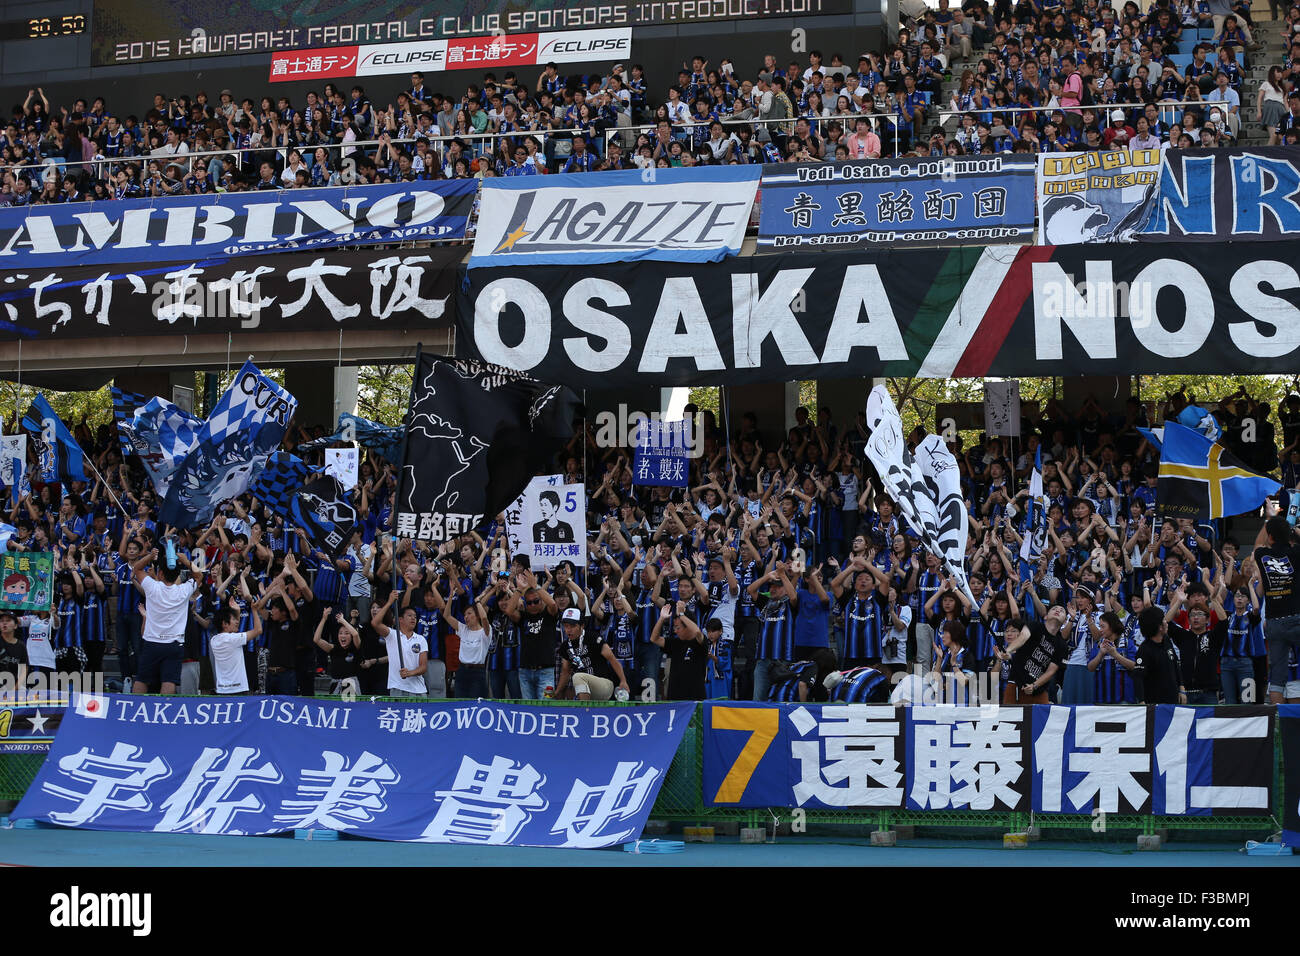 Gamba Osaka Fans October 4 2015 Football Soccer 2015 J1 Stock Photo Alamy